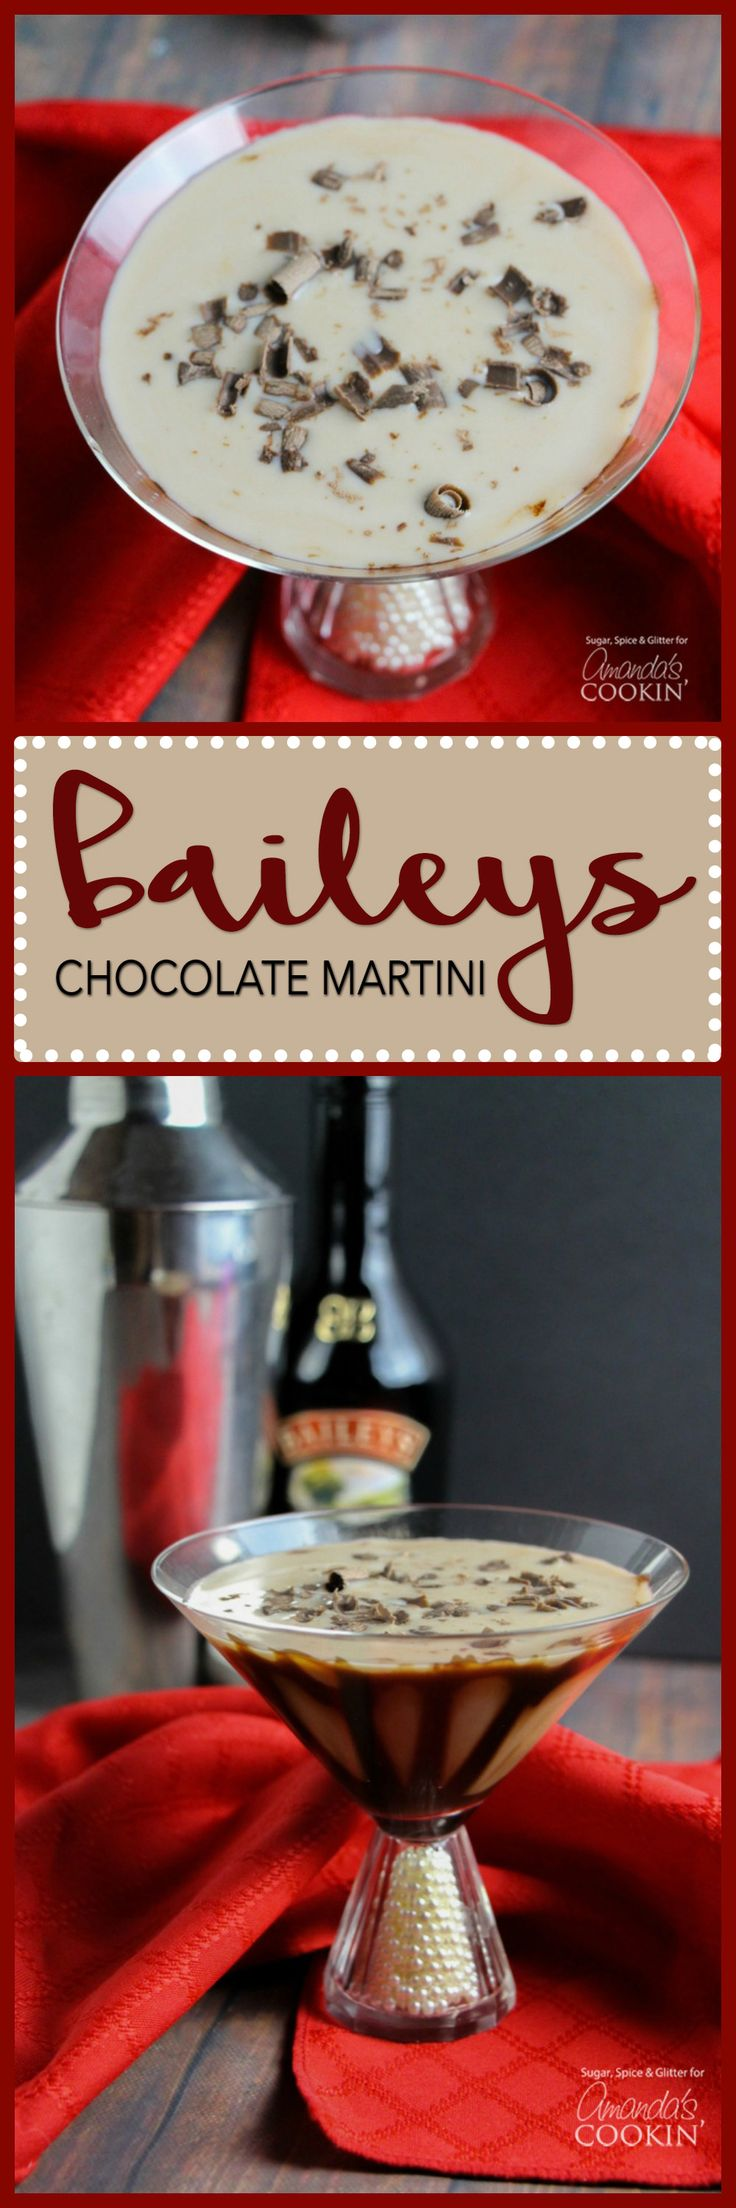 Best 25+ Baileys alcohol ideas on Pinterest | Alcohol chocolate ...